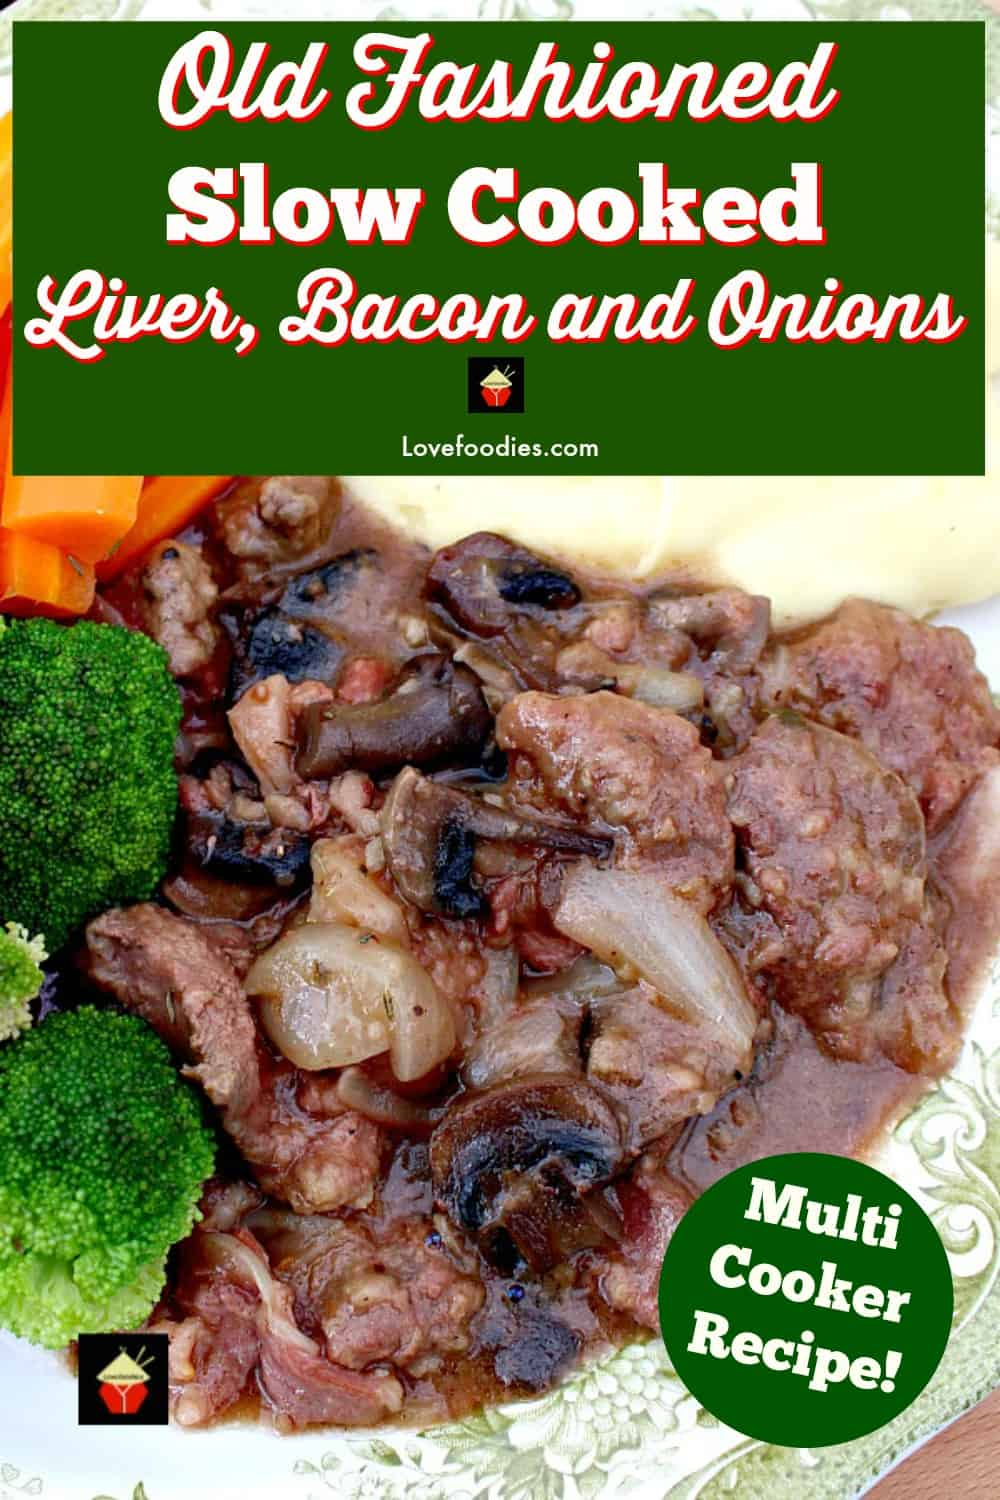 Old Fashioned Slow Cooked Liver, Bacon and Onions. Meltingly soft, tender pieces of liver cooked in a delicious onion gravy with the bonus of bacon thrown in too! Options to use stovetop, slow cooker or oven, pressure cooker, multi cooker, Instantpot too!